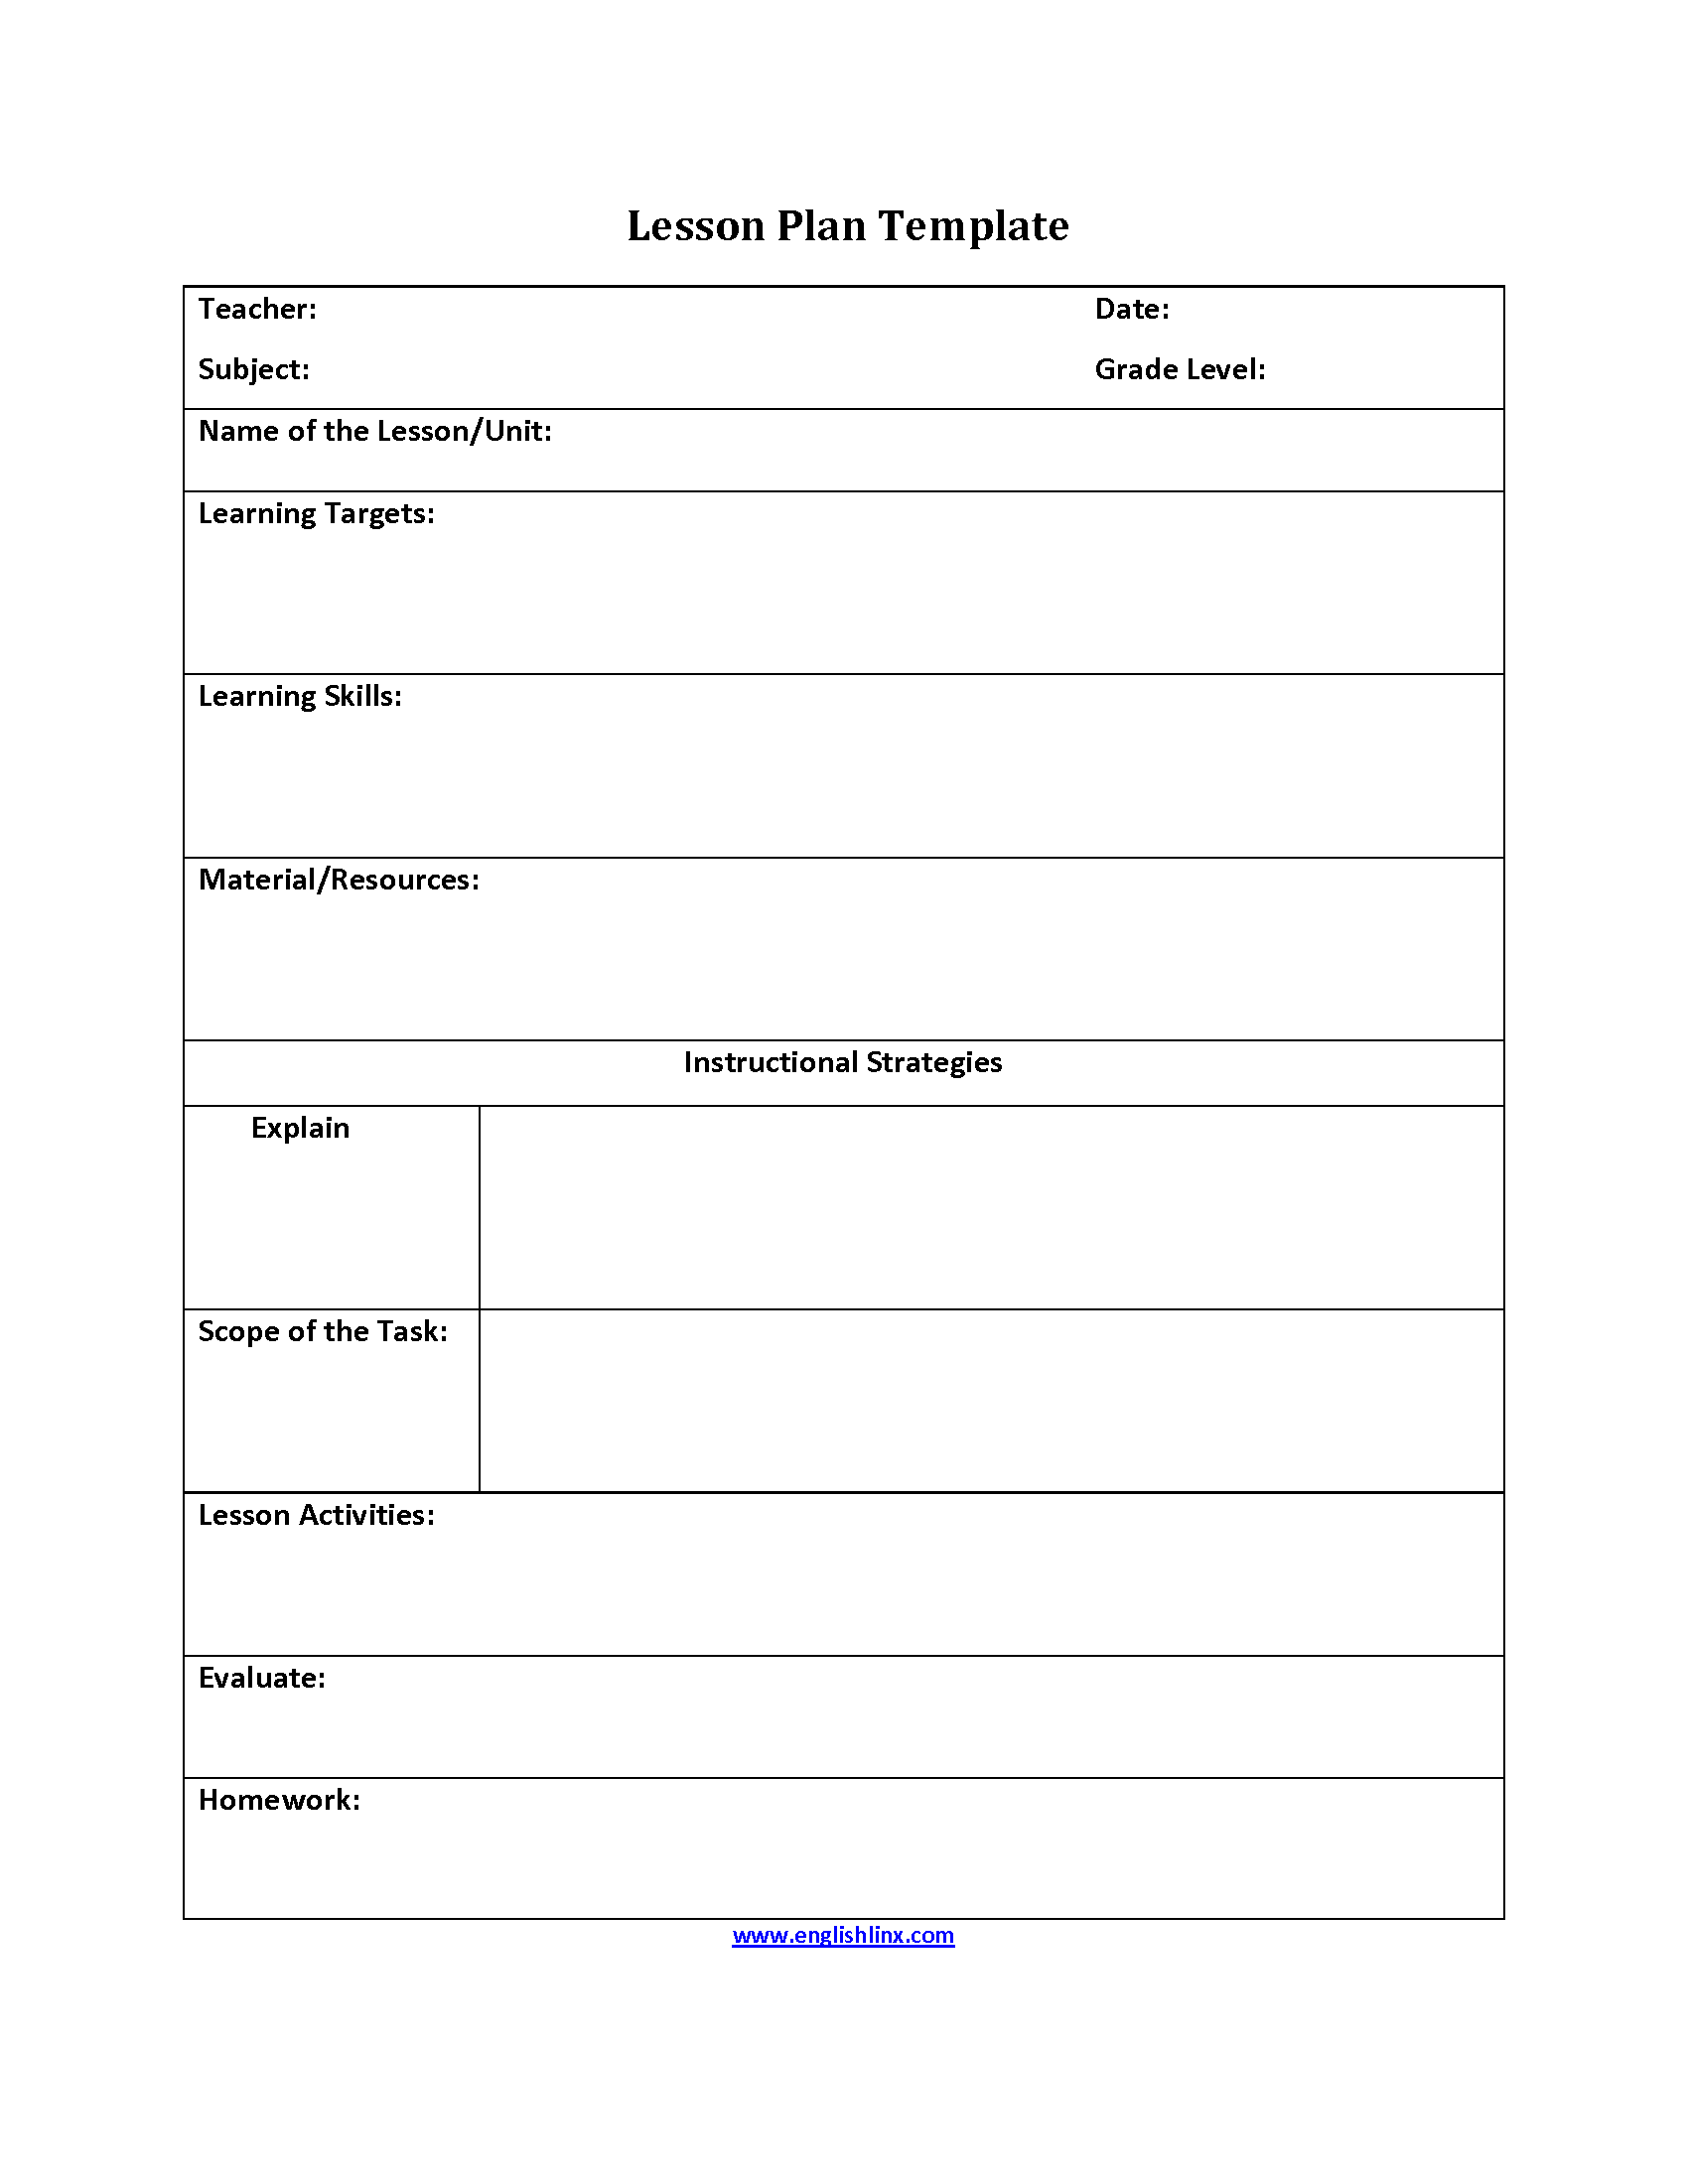 Englishlinxcom Lesson Plan Template - Free lesson plans templates